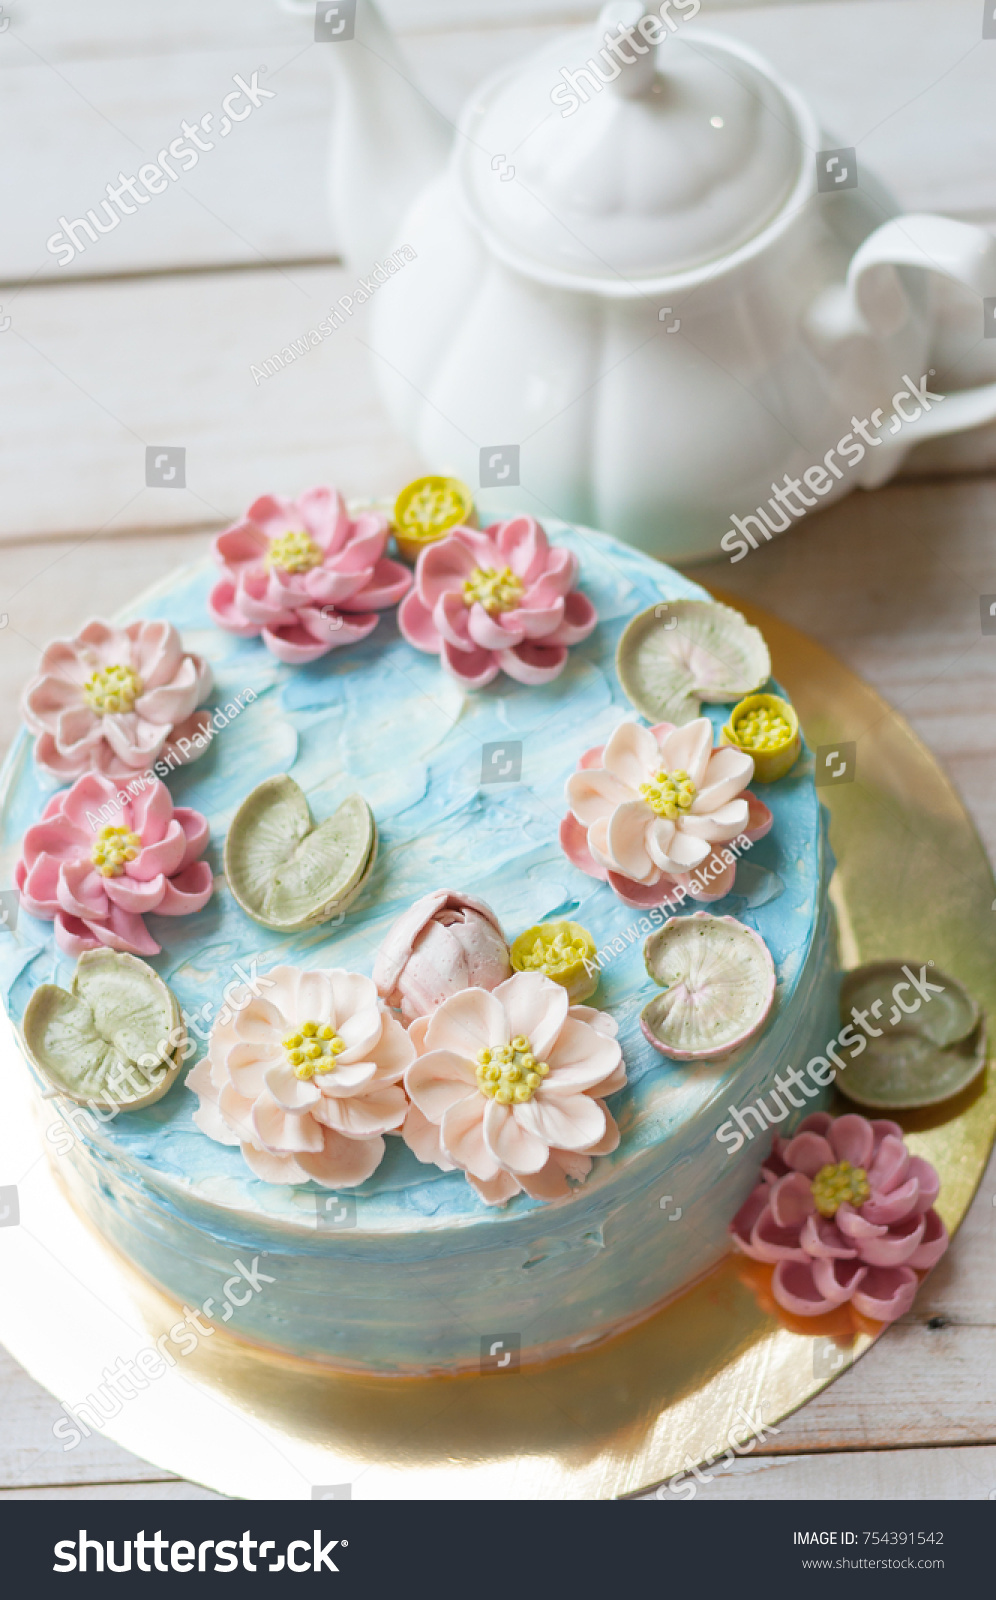 Buttercream Lotus Flower Pond Cake Stock Photo Edit Now 754391542